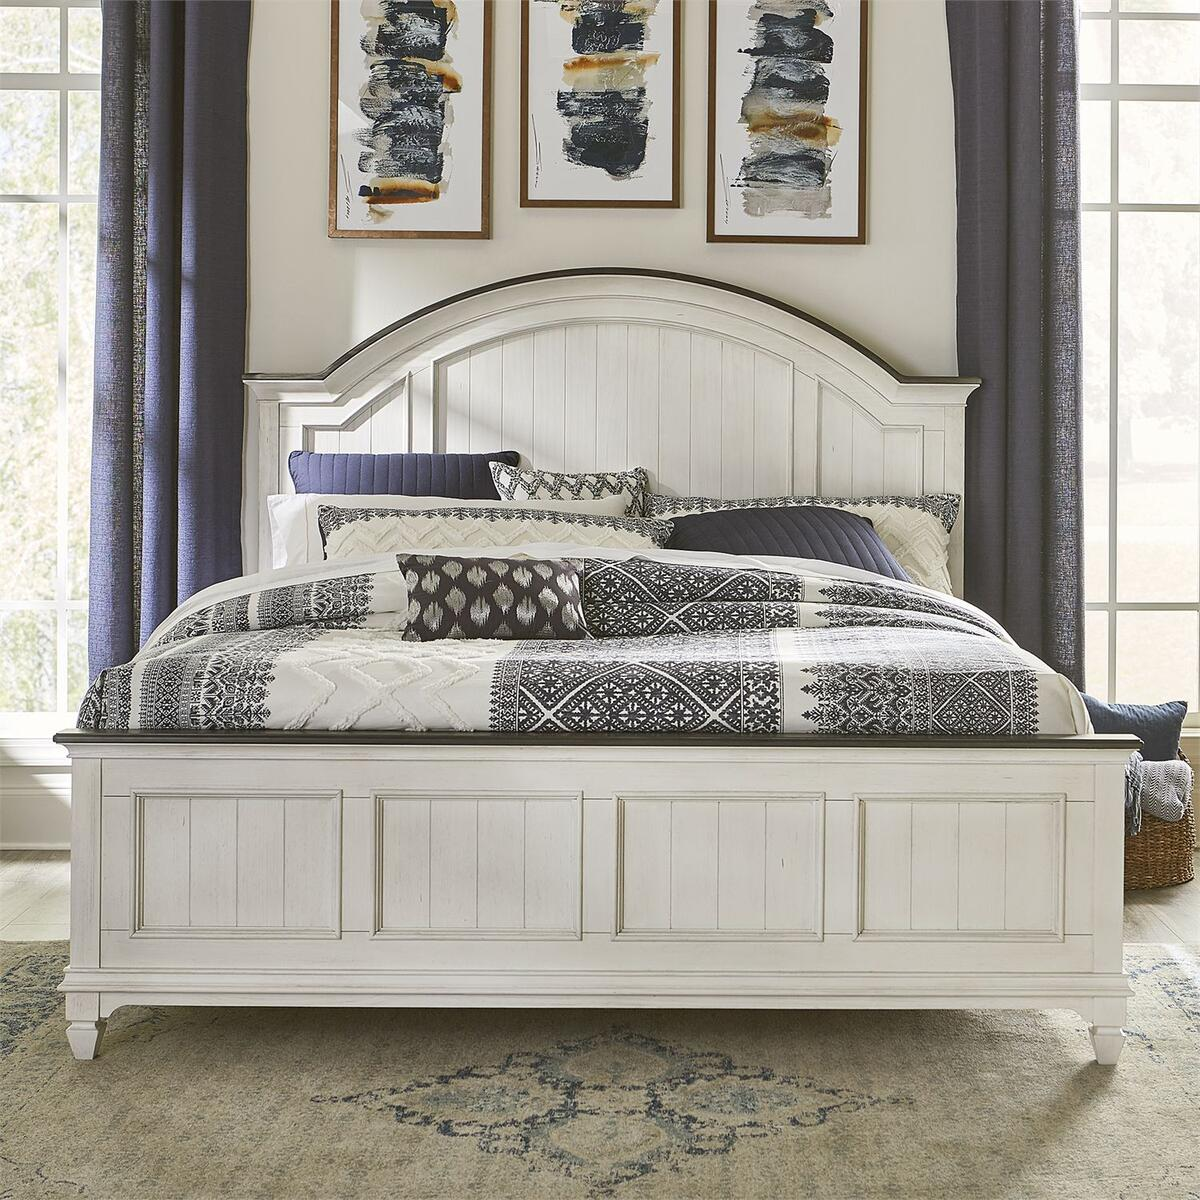 King Arched Panel Bed